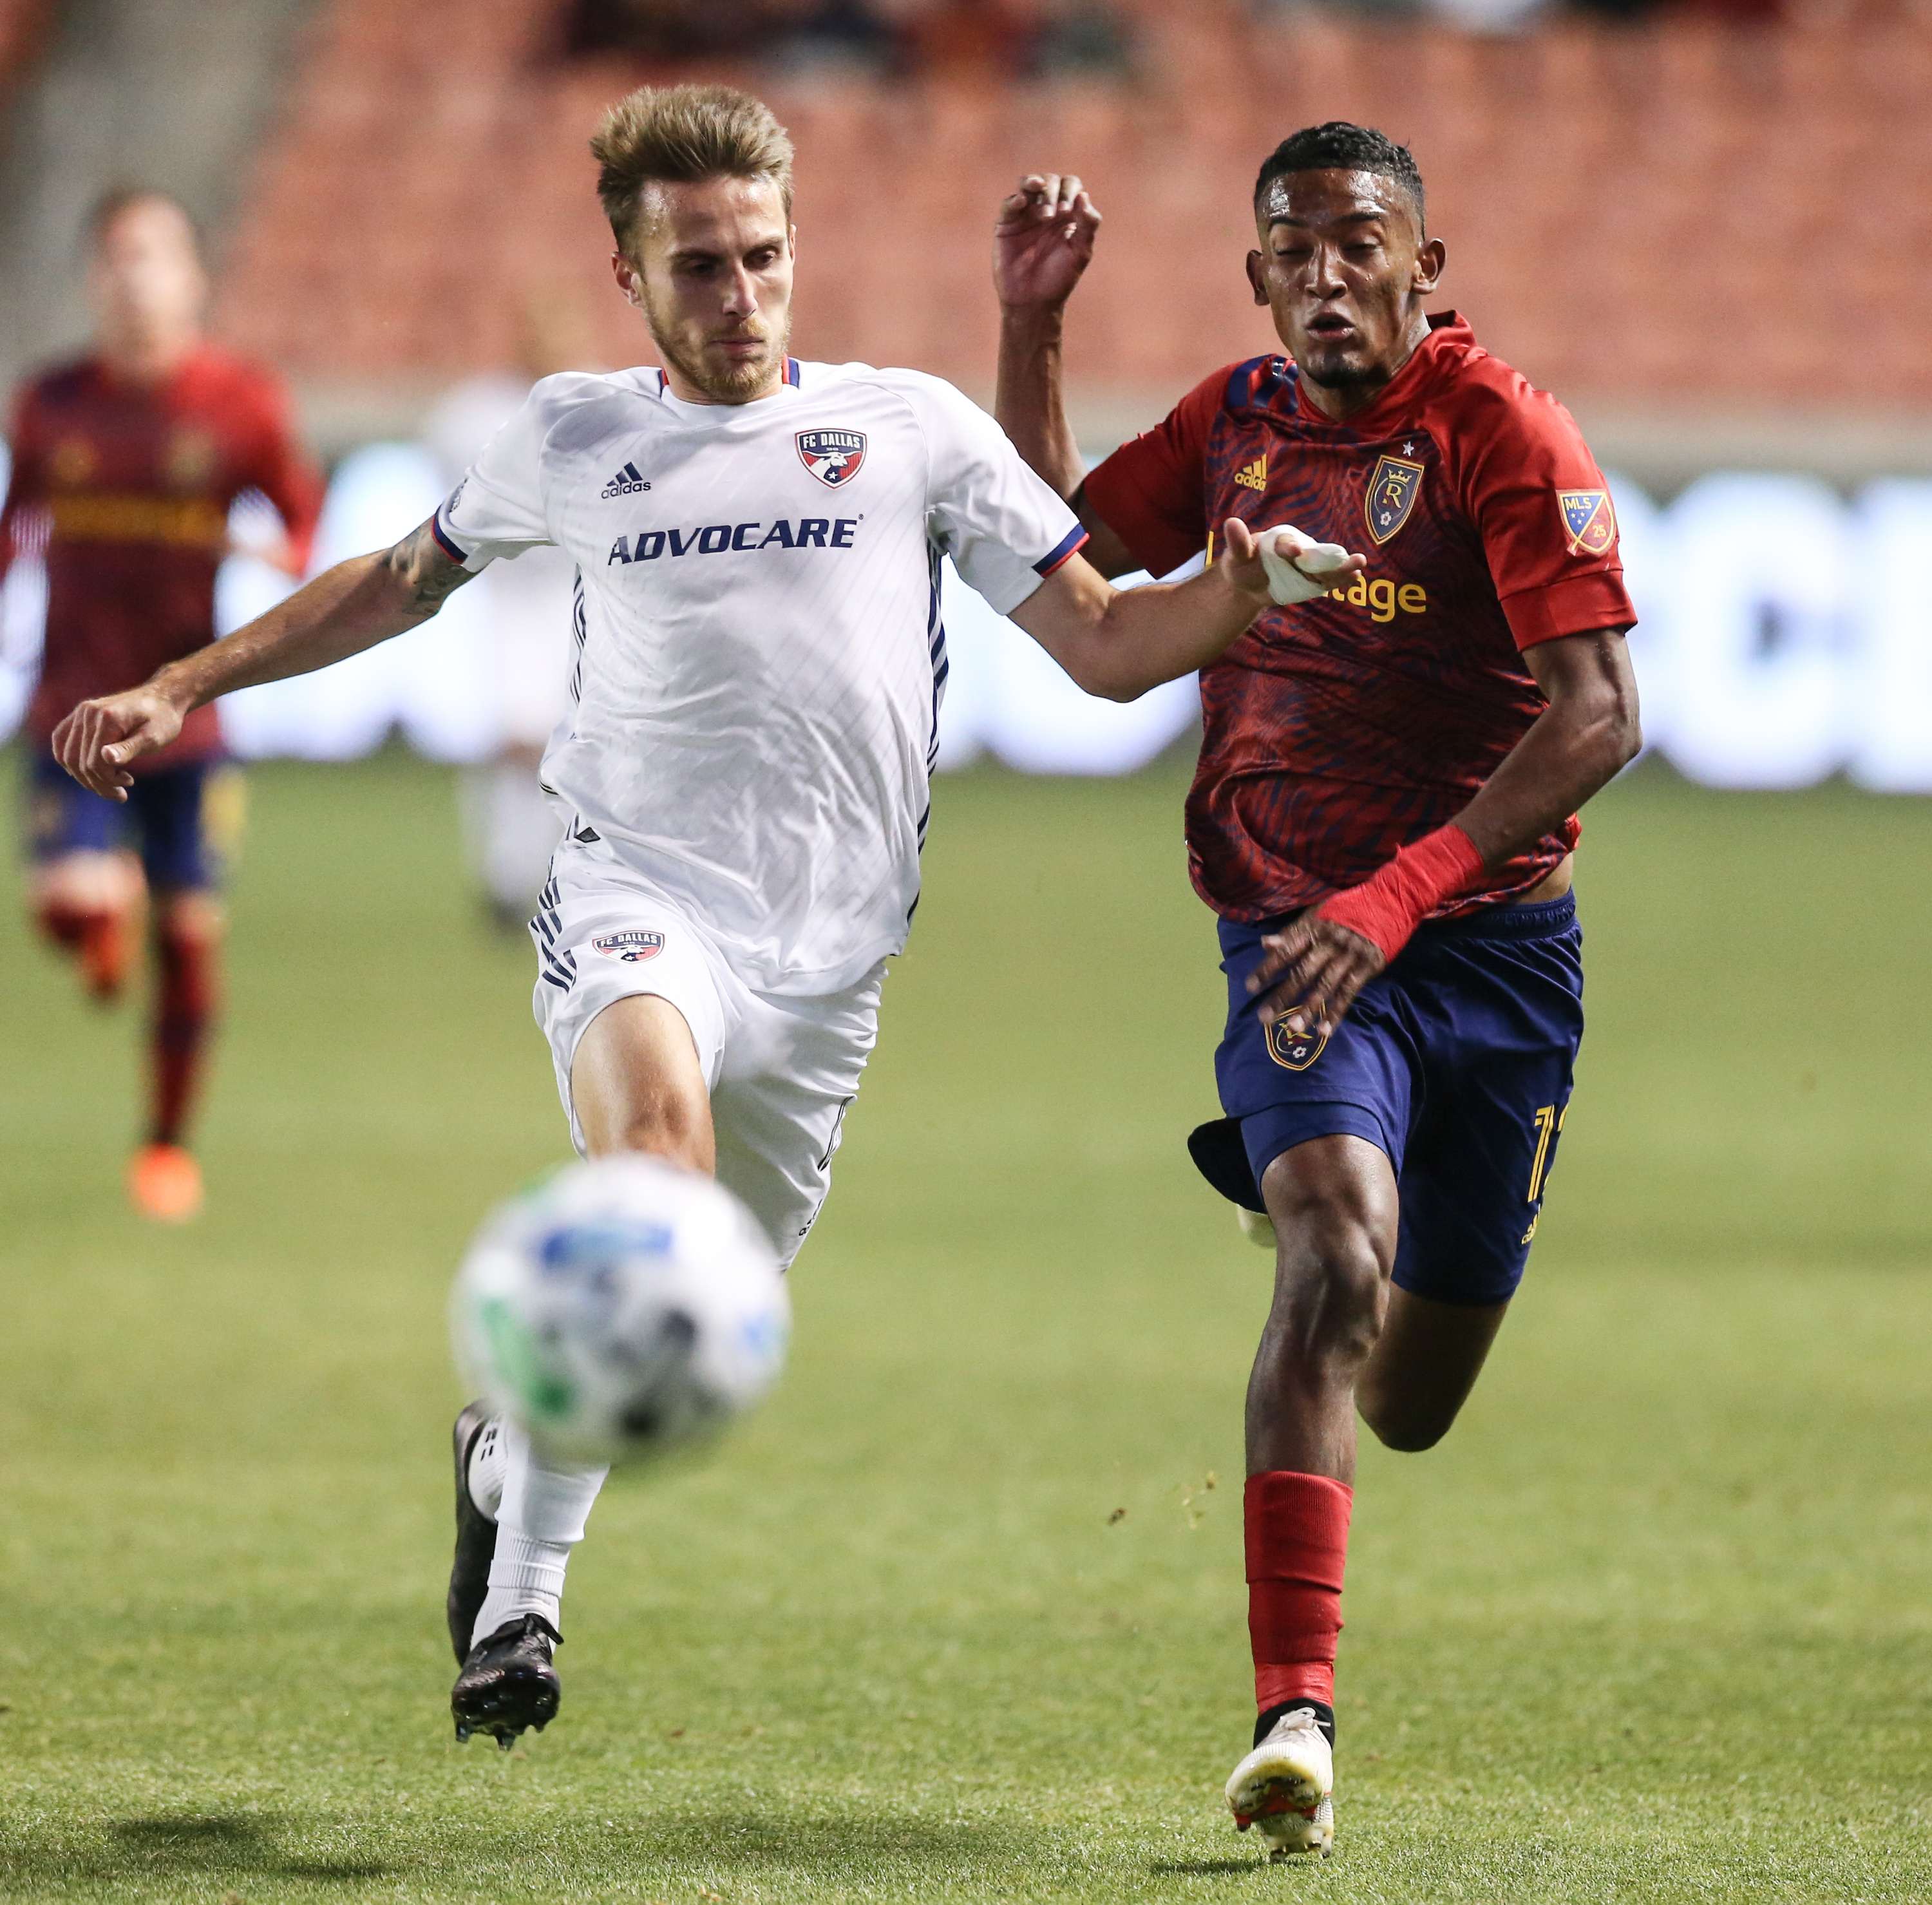 Real Salt Lake forward Douglas Martinez (12) rushes to the ball against FC Dallas defender Bressan (4) during an MLS soccer game at Rio Tinto Stadium in Sandy on Saturday, Oct. 24, 2020.